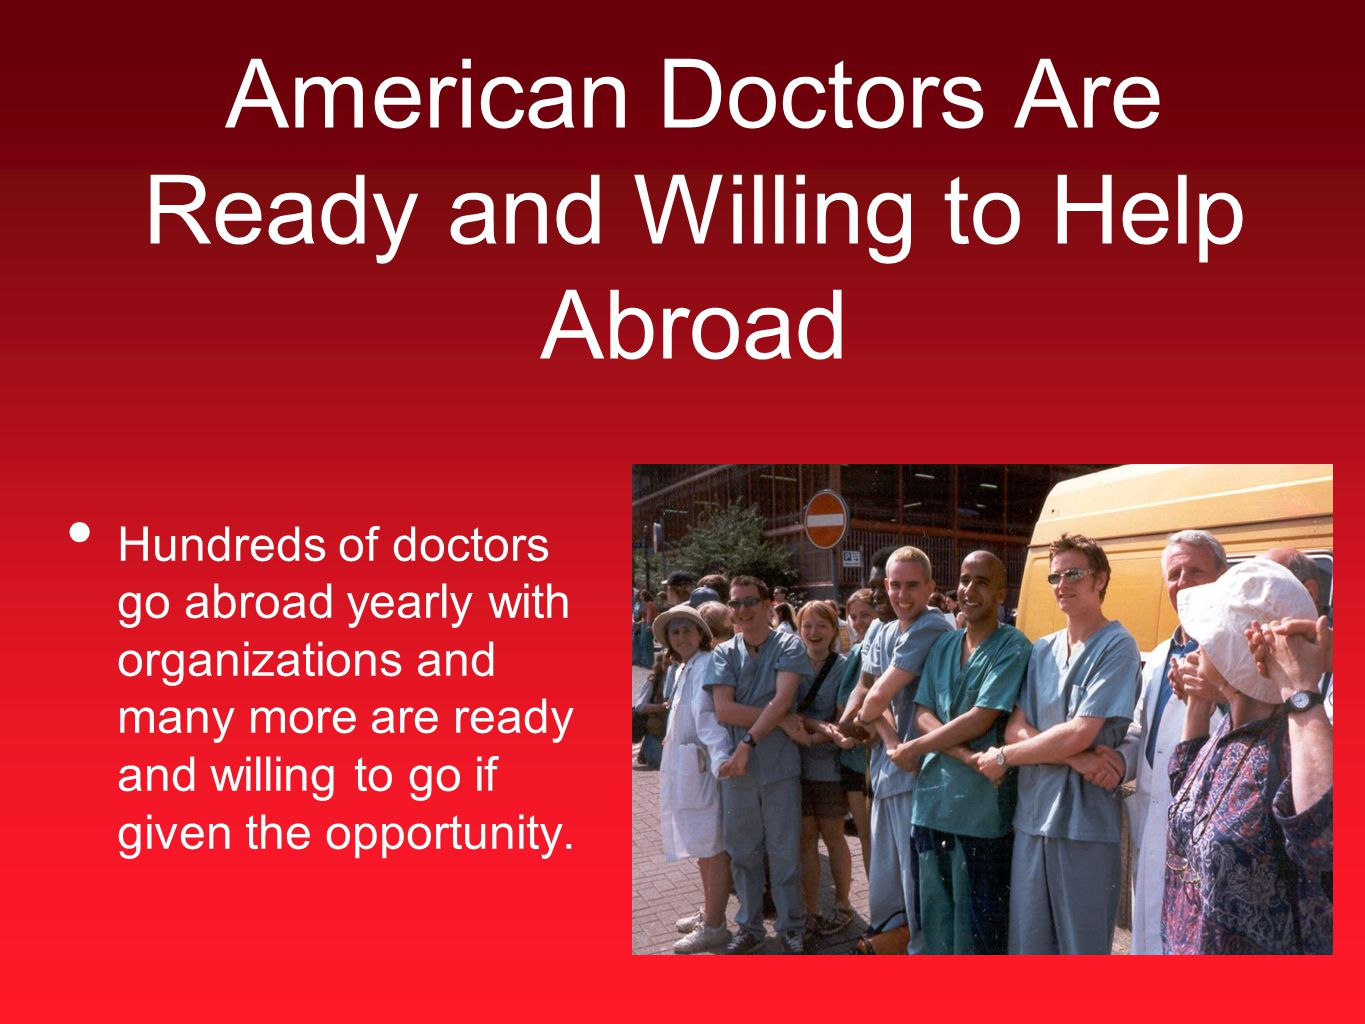 American Doctors Are Ready and Willing to Help Abroad Hundreds of doctors go abroad yearly with organizations and many more are ready and willing to go if given the opportunity.